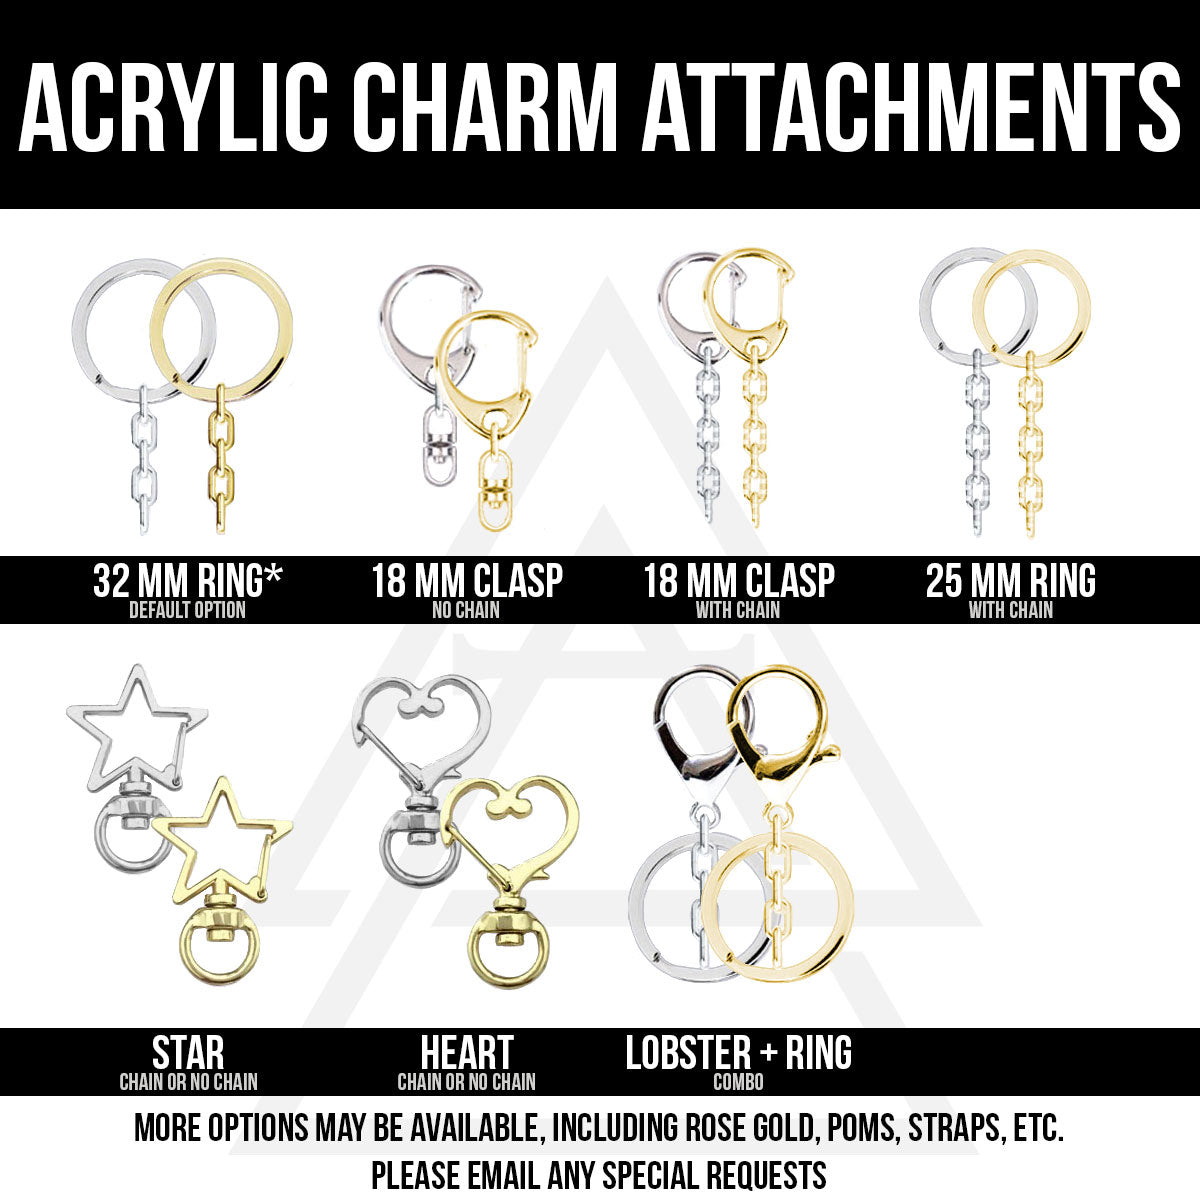 Alchemy Merch - Custom Acrylic Charms attachments